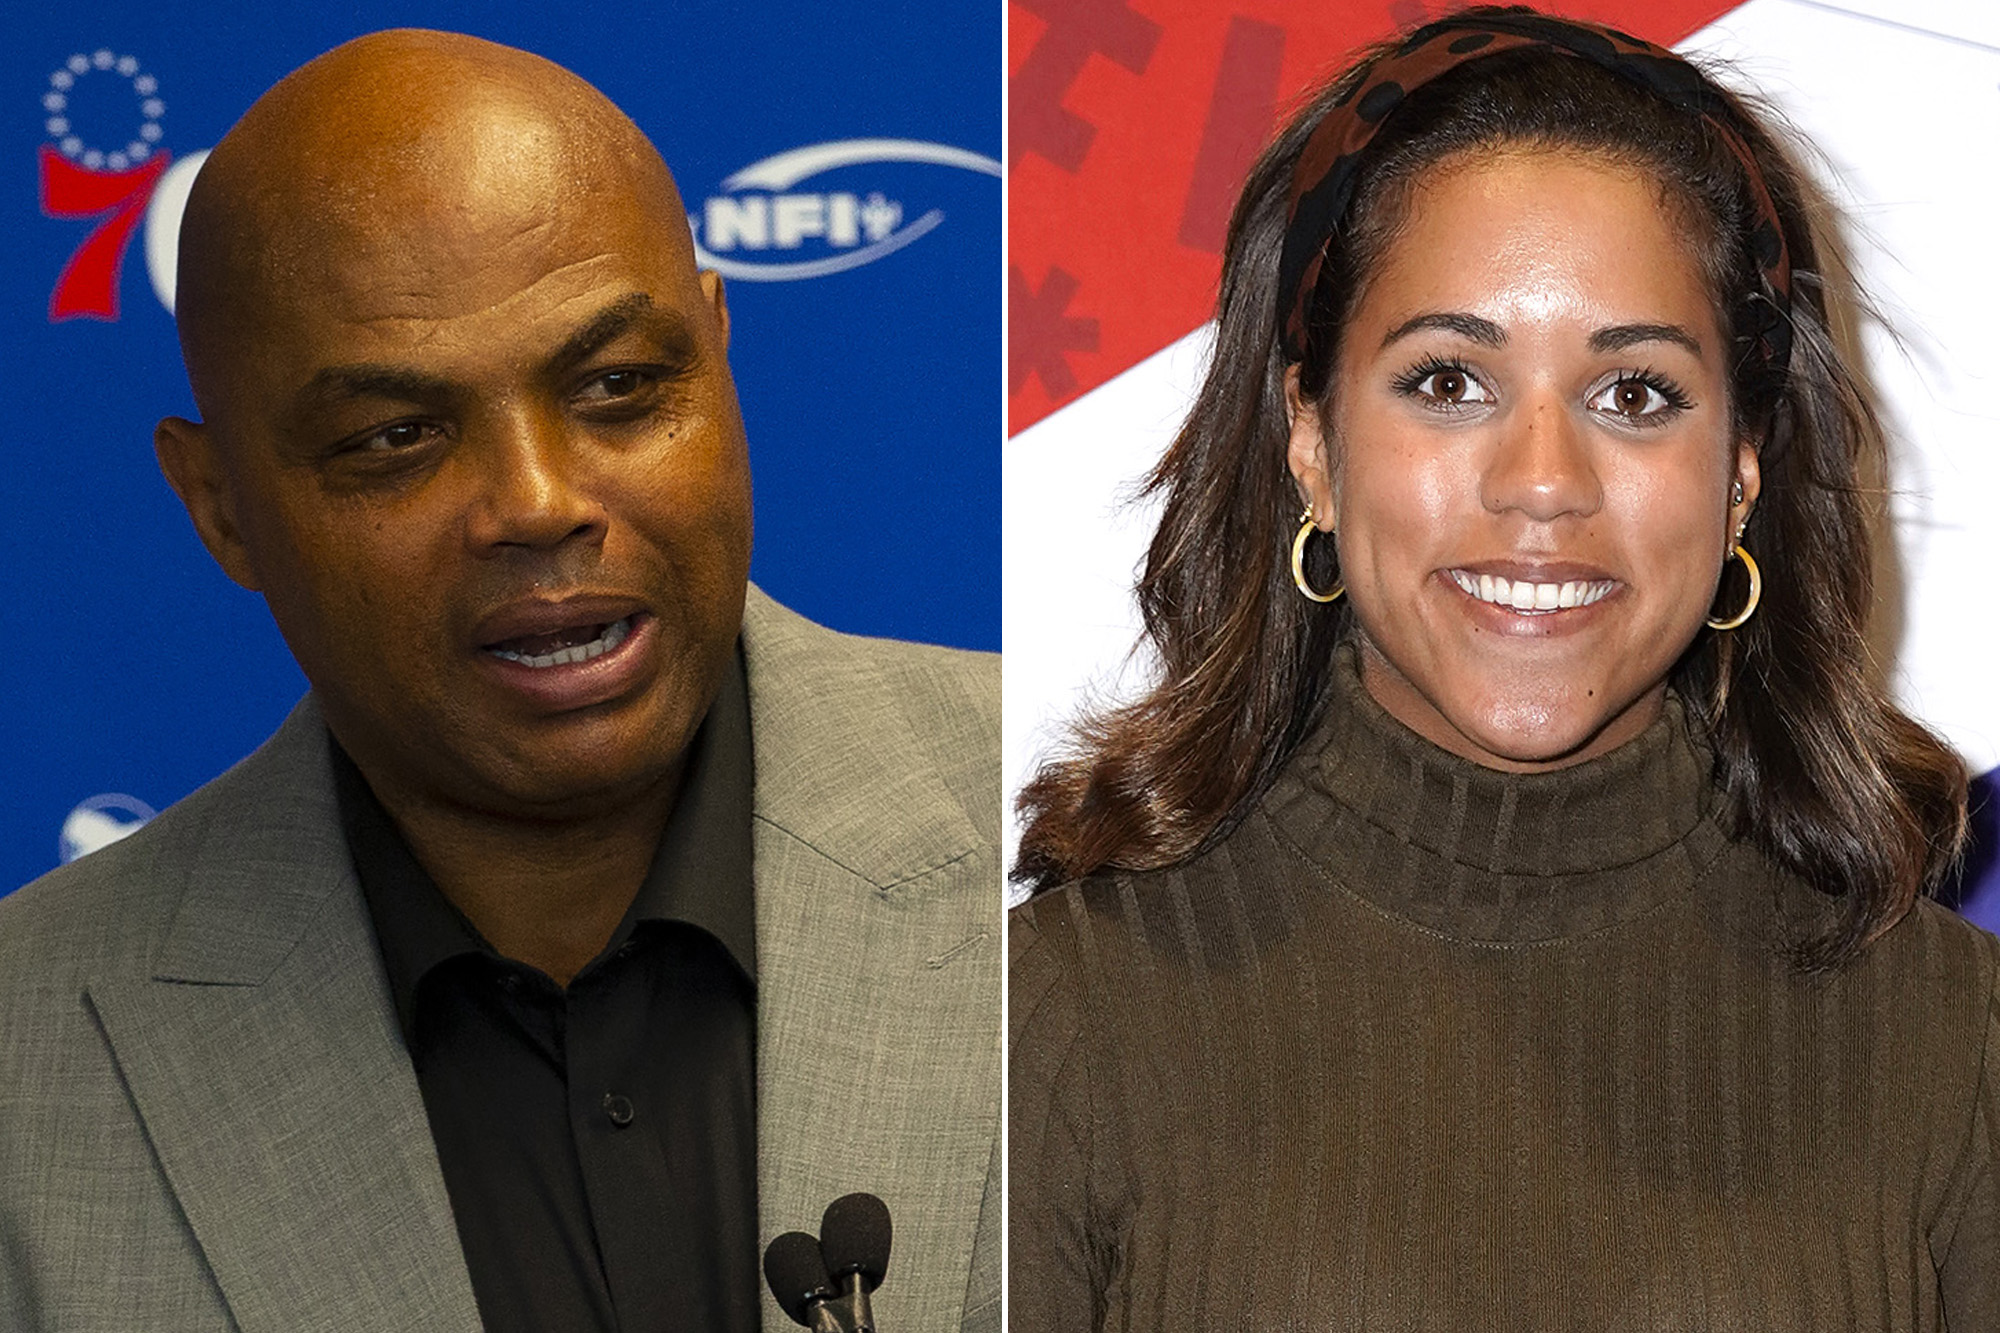 Alexi Mccammond Claims Charles Barkley Said He Would Hit Her Read more to know all about maureen blumhardt's son, husband, children, and more. alexi mccammond claims charles barkley